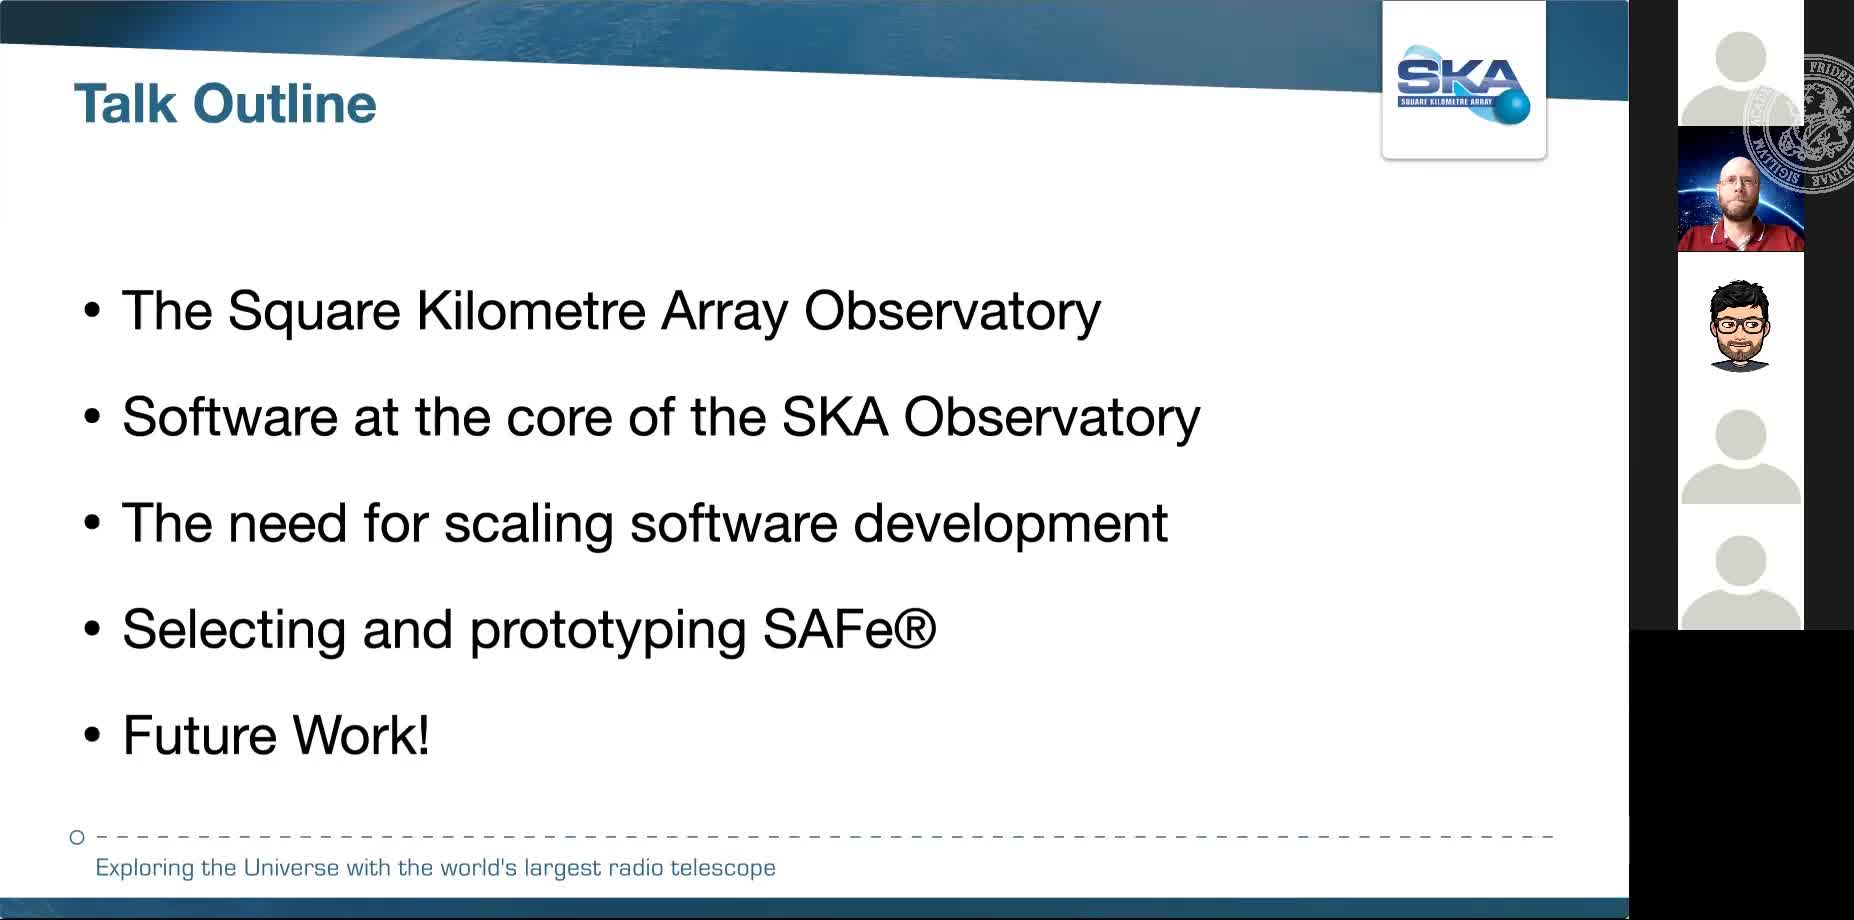 SKA Software Development: Scaling agile software development processes around the world preview image